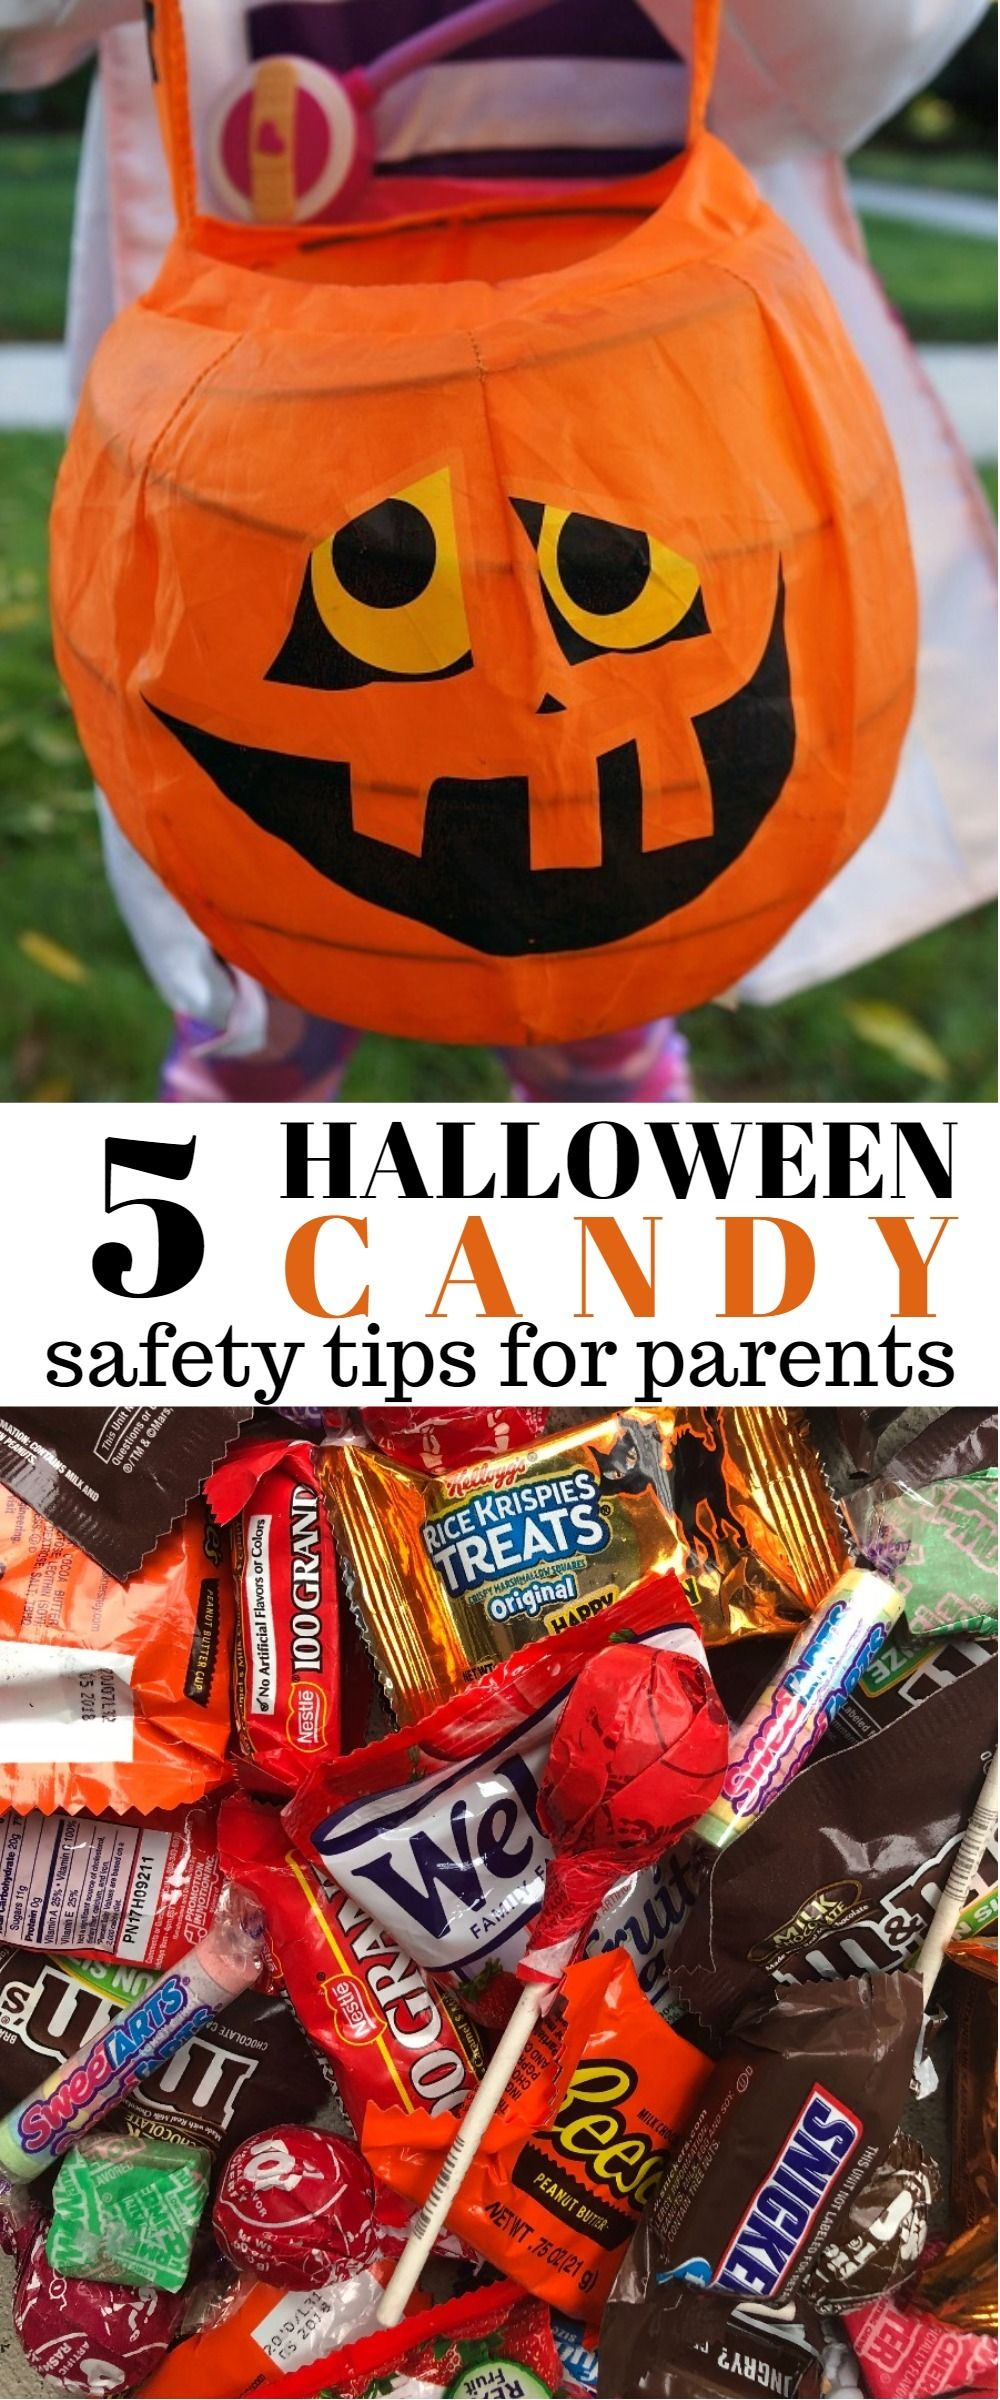 5 halloween candy safety tips for parents on trick or treat night knowyourotcs ad